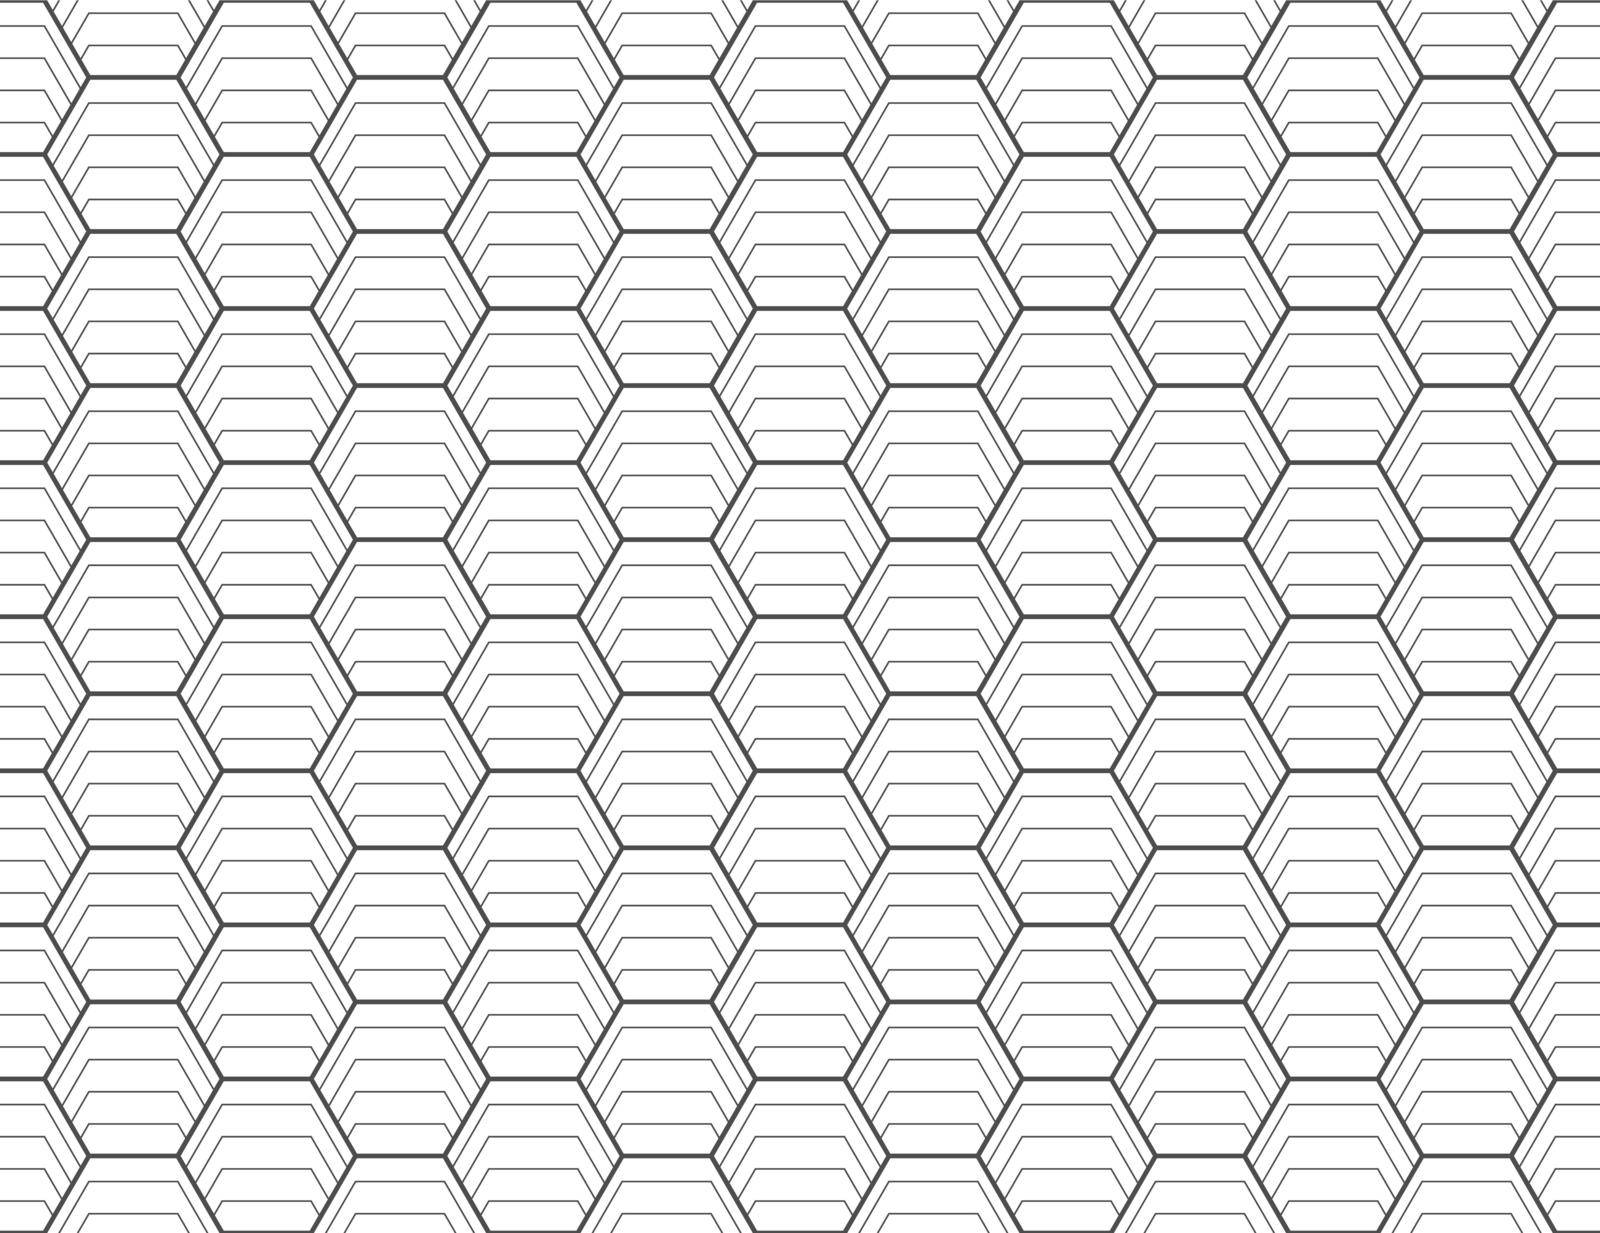 seamless geometric linear pattern creates a hexagon. An ornament for texture, textiles and simple backgrounds. Flat style.